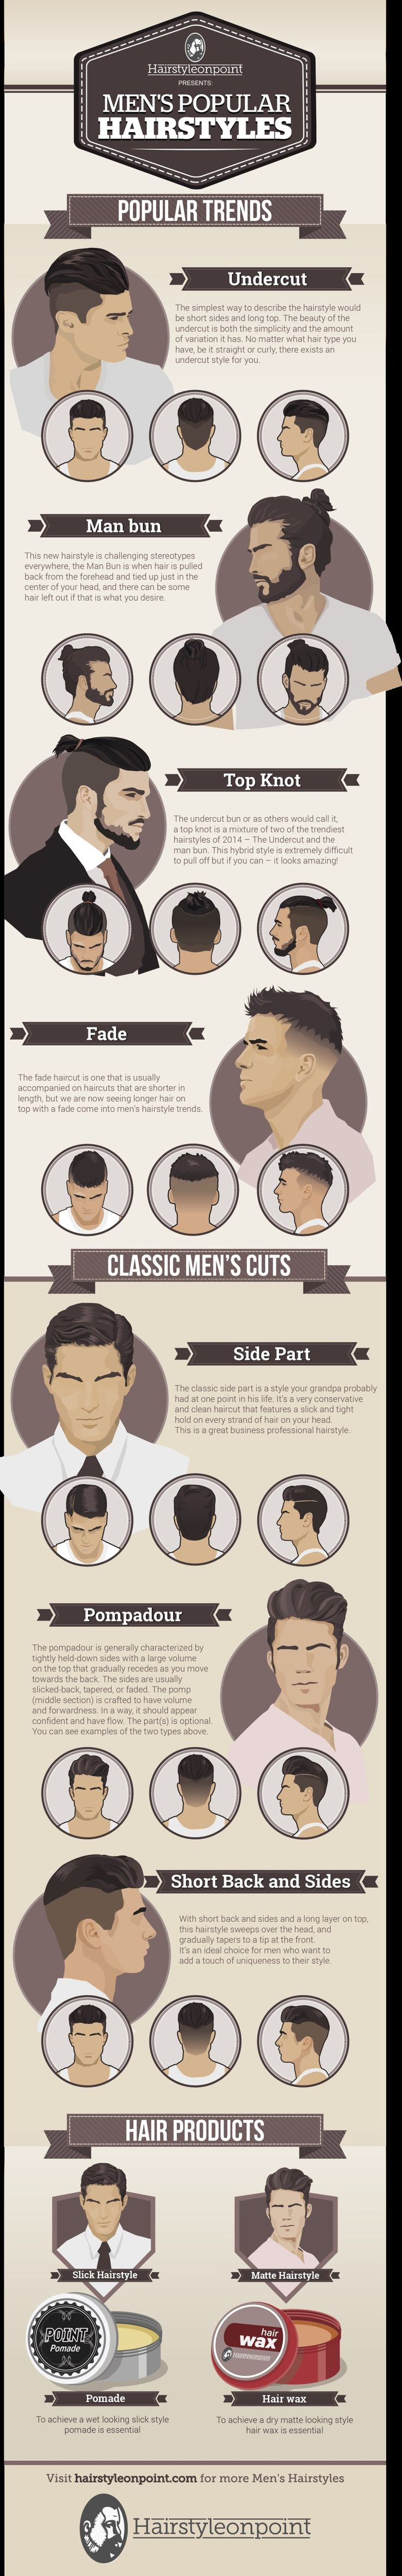 Luckily, men's style blog Hairstyleonpoint created an amazing chart to show what's hot in men's hair, with added suggestions on what products to use. | These Are The Most Popular Current Men's Hairstyles